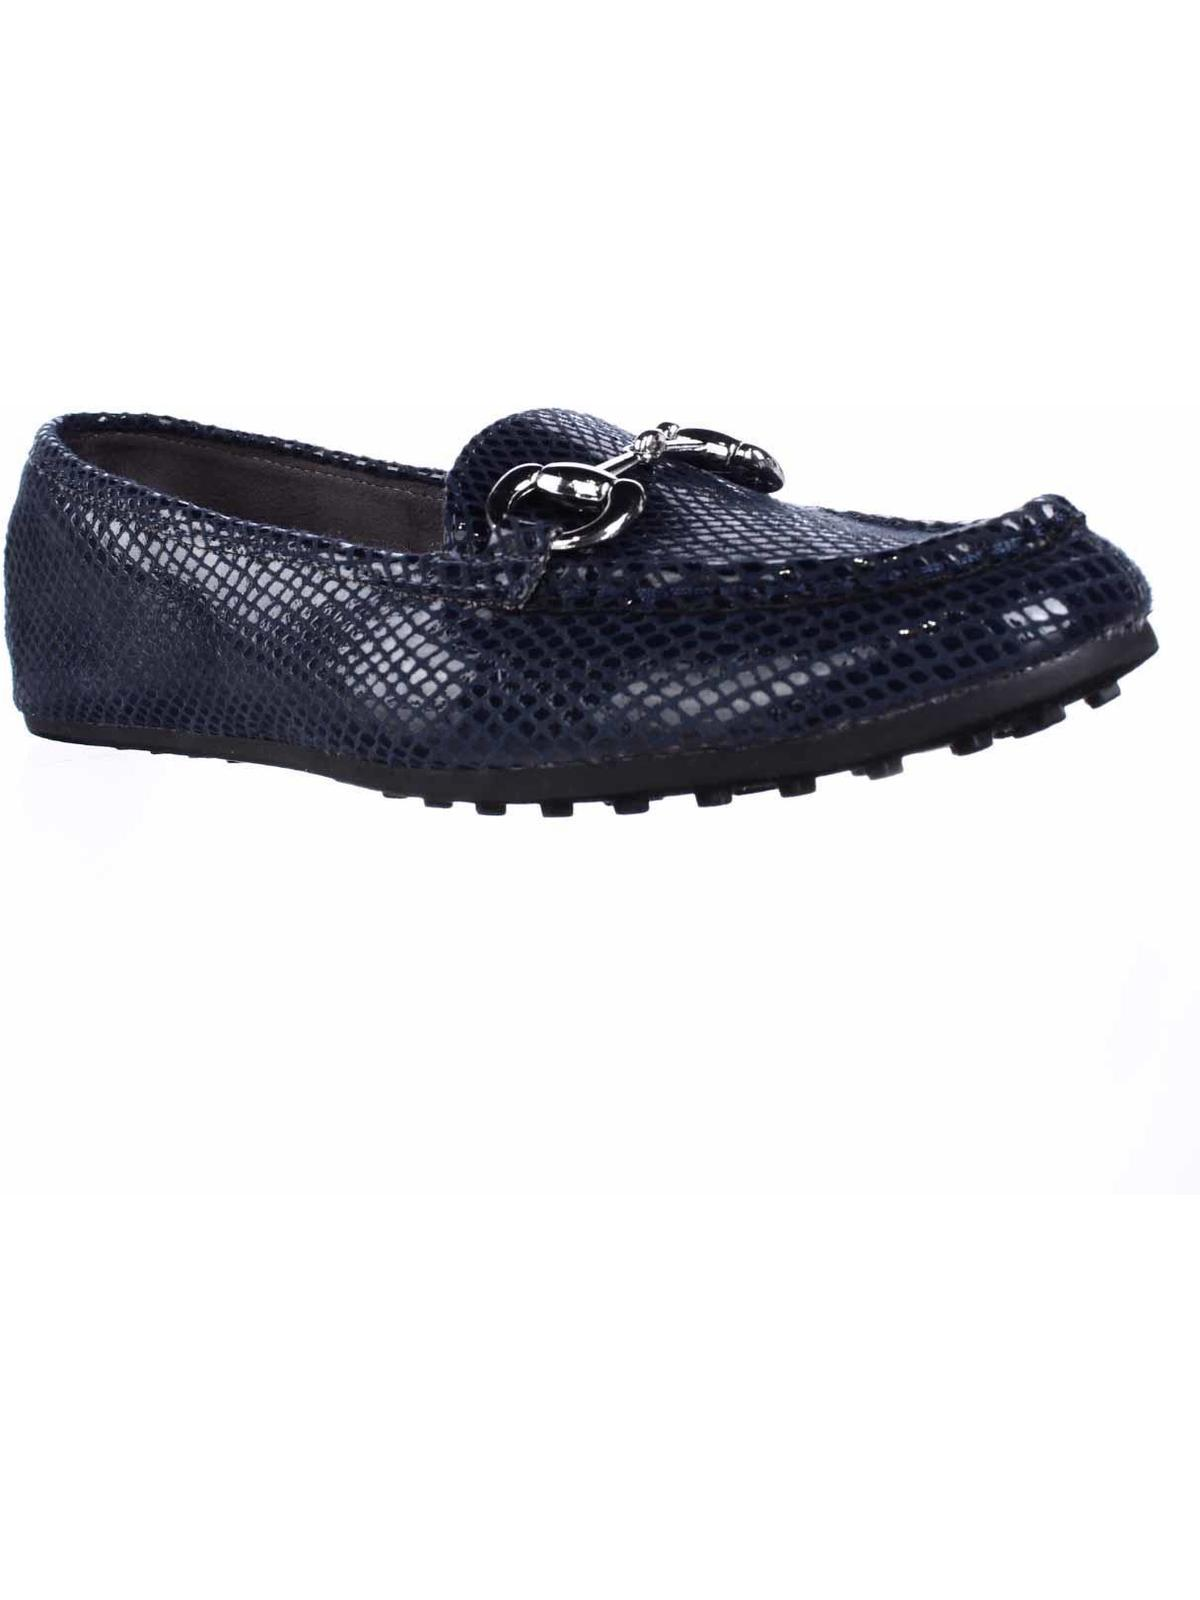 Women's Aerosoles Drive Through Driving Moc by Aerosoles